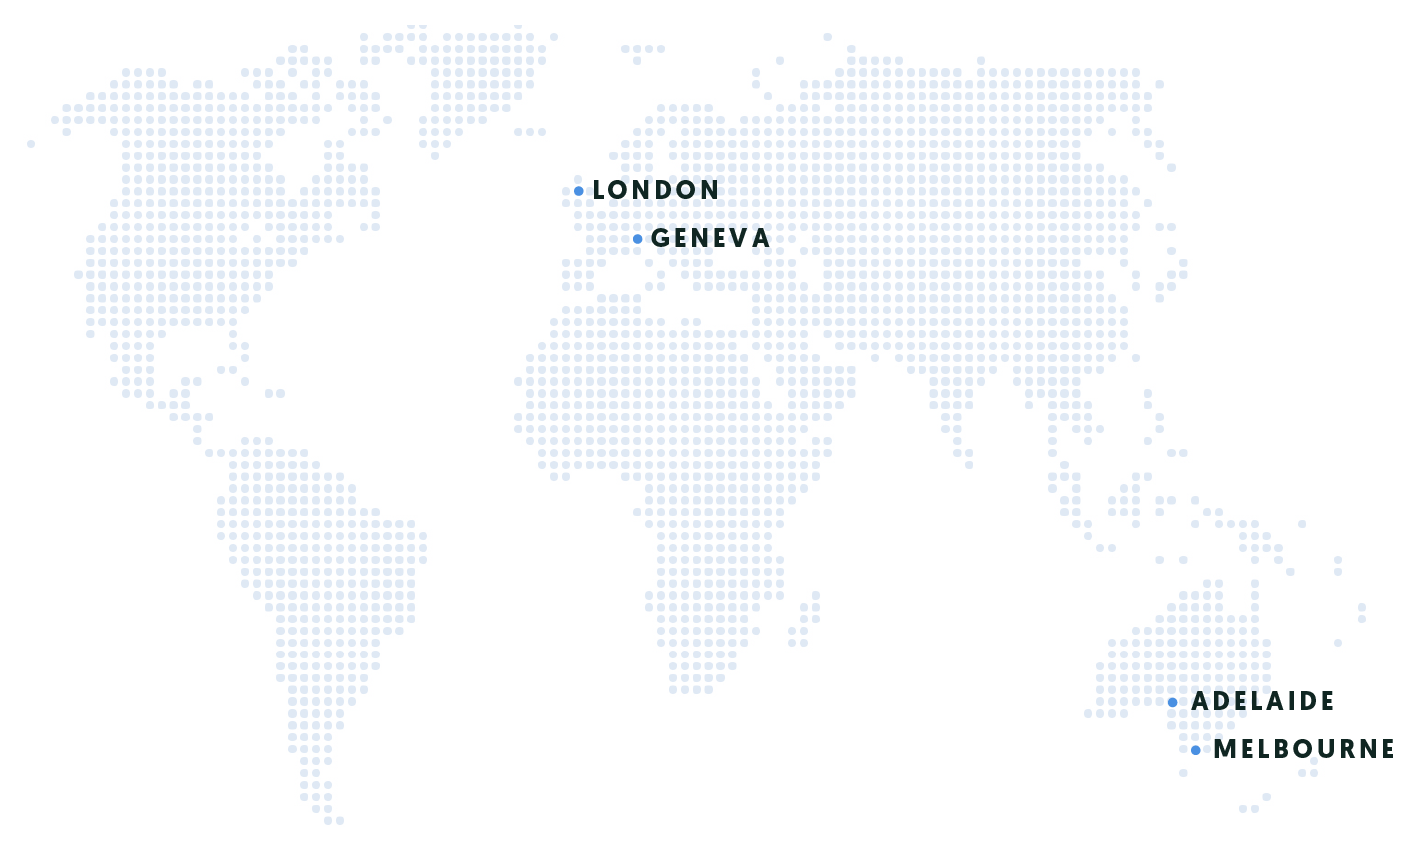 Imap Global Locations